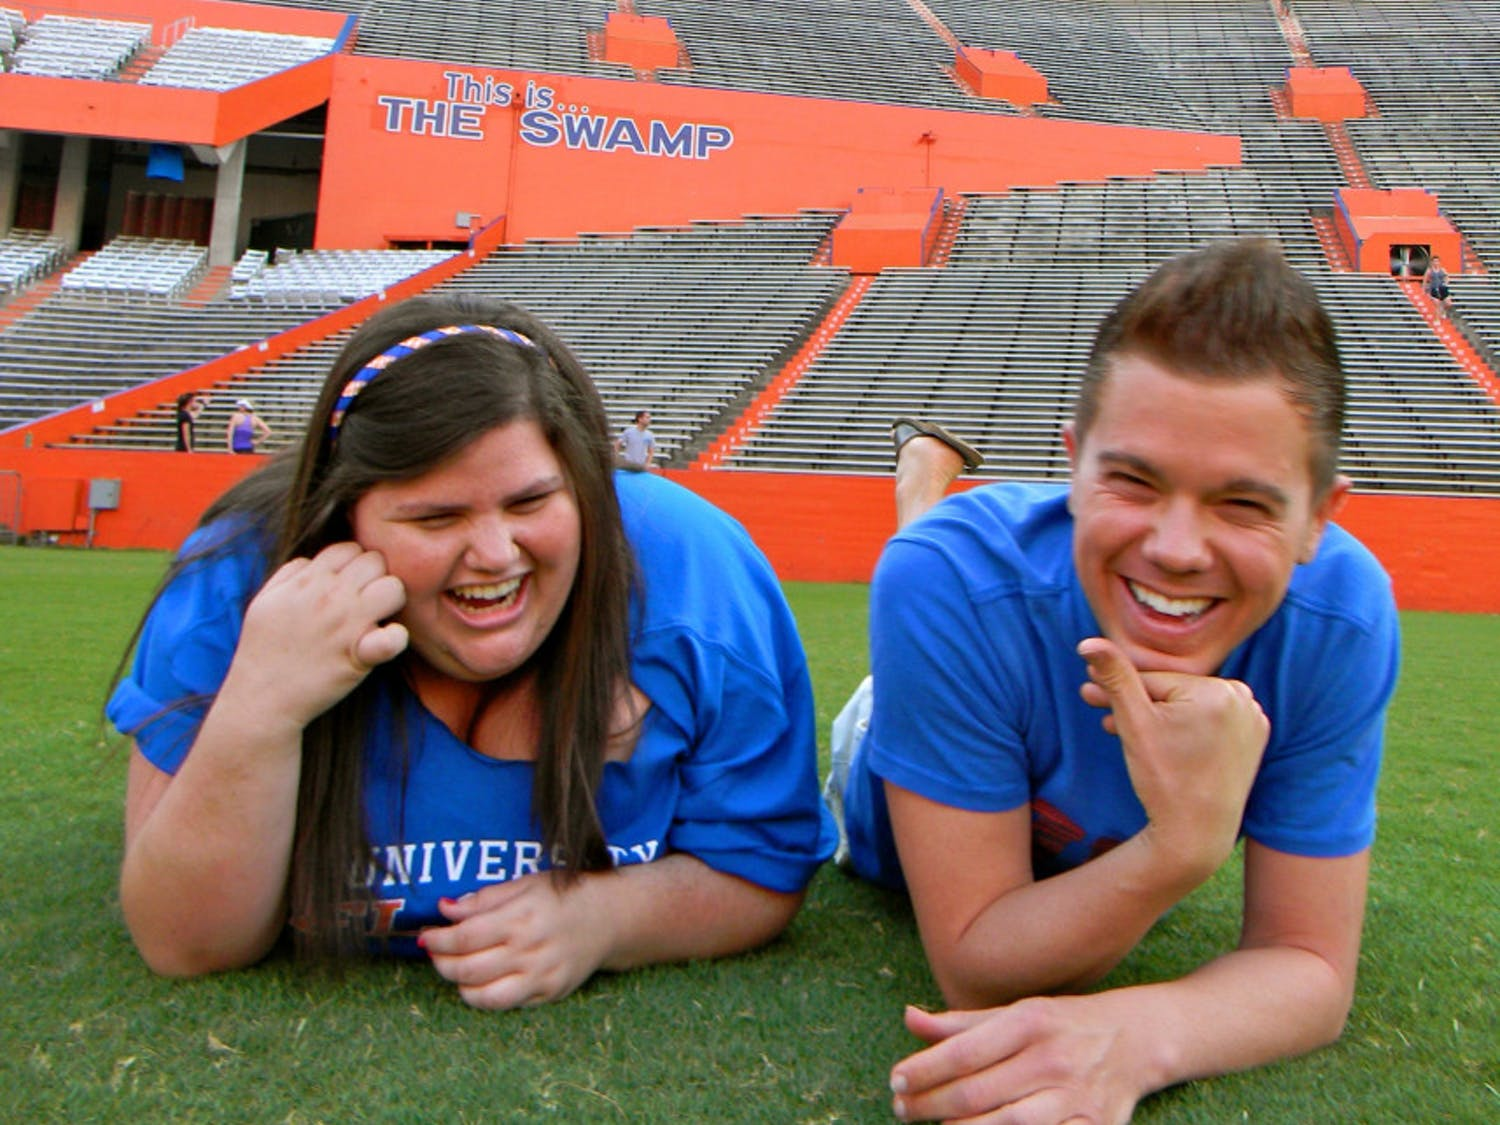 Alison Schwartz and her best friend, Jared Misner, at the University of Florida. Alison was a UF and Alligator alumna.